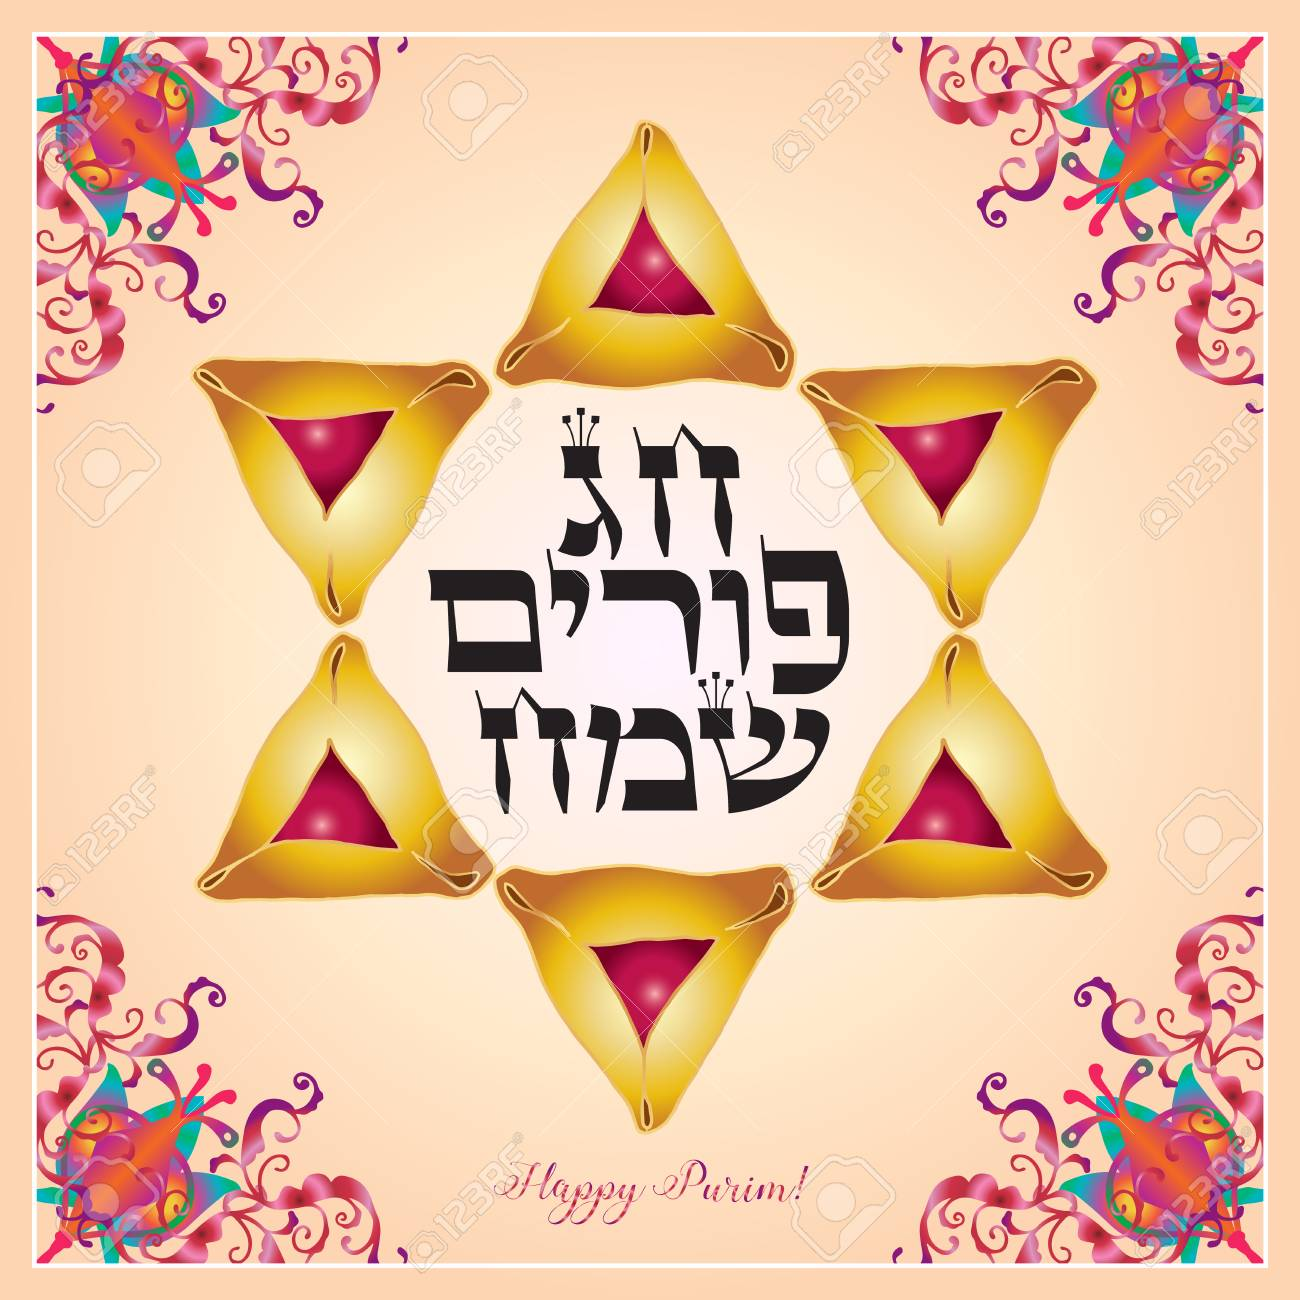 Happy purim greeting card in hebrew royalty free cliparts vectors happy purim greeting card in hebrew stock vector 71360846 m4hsunfo